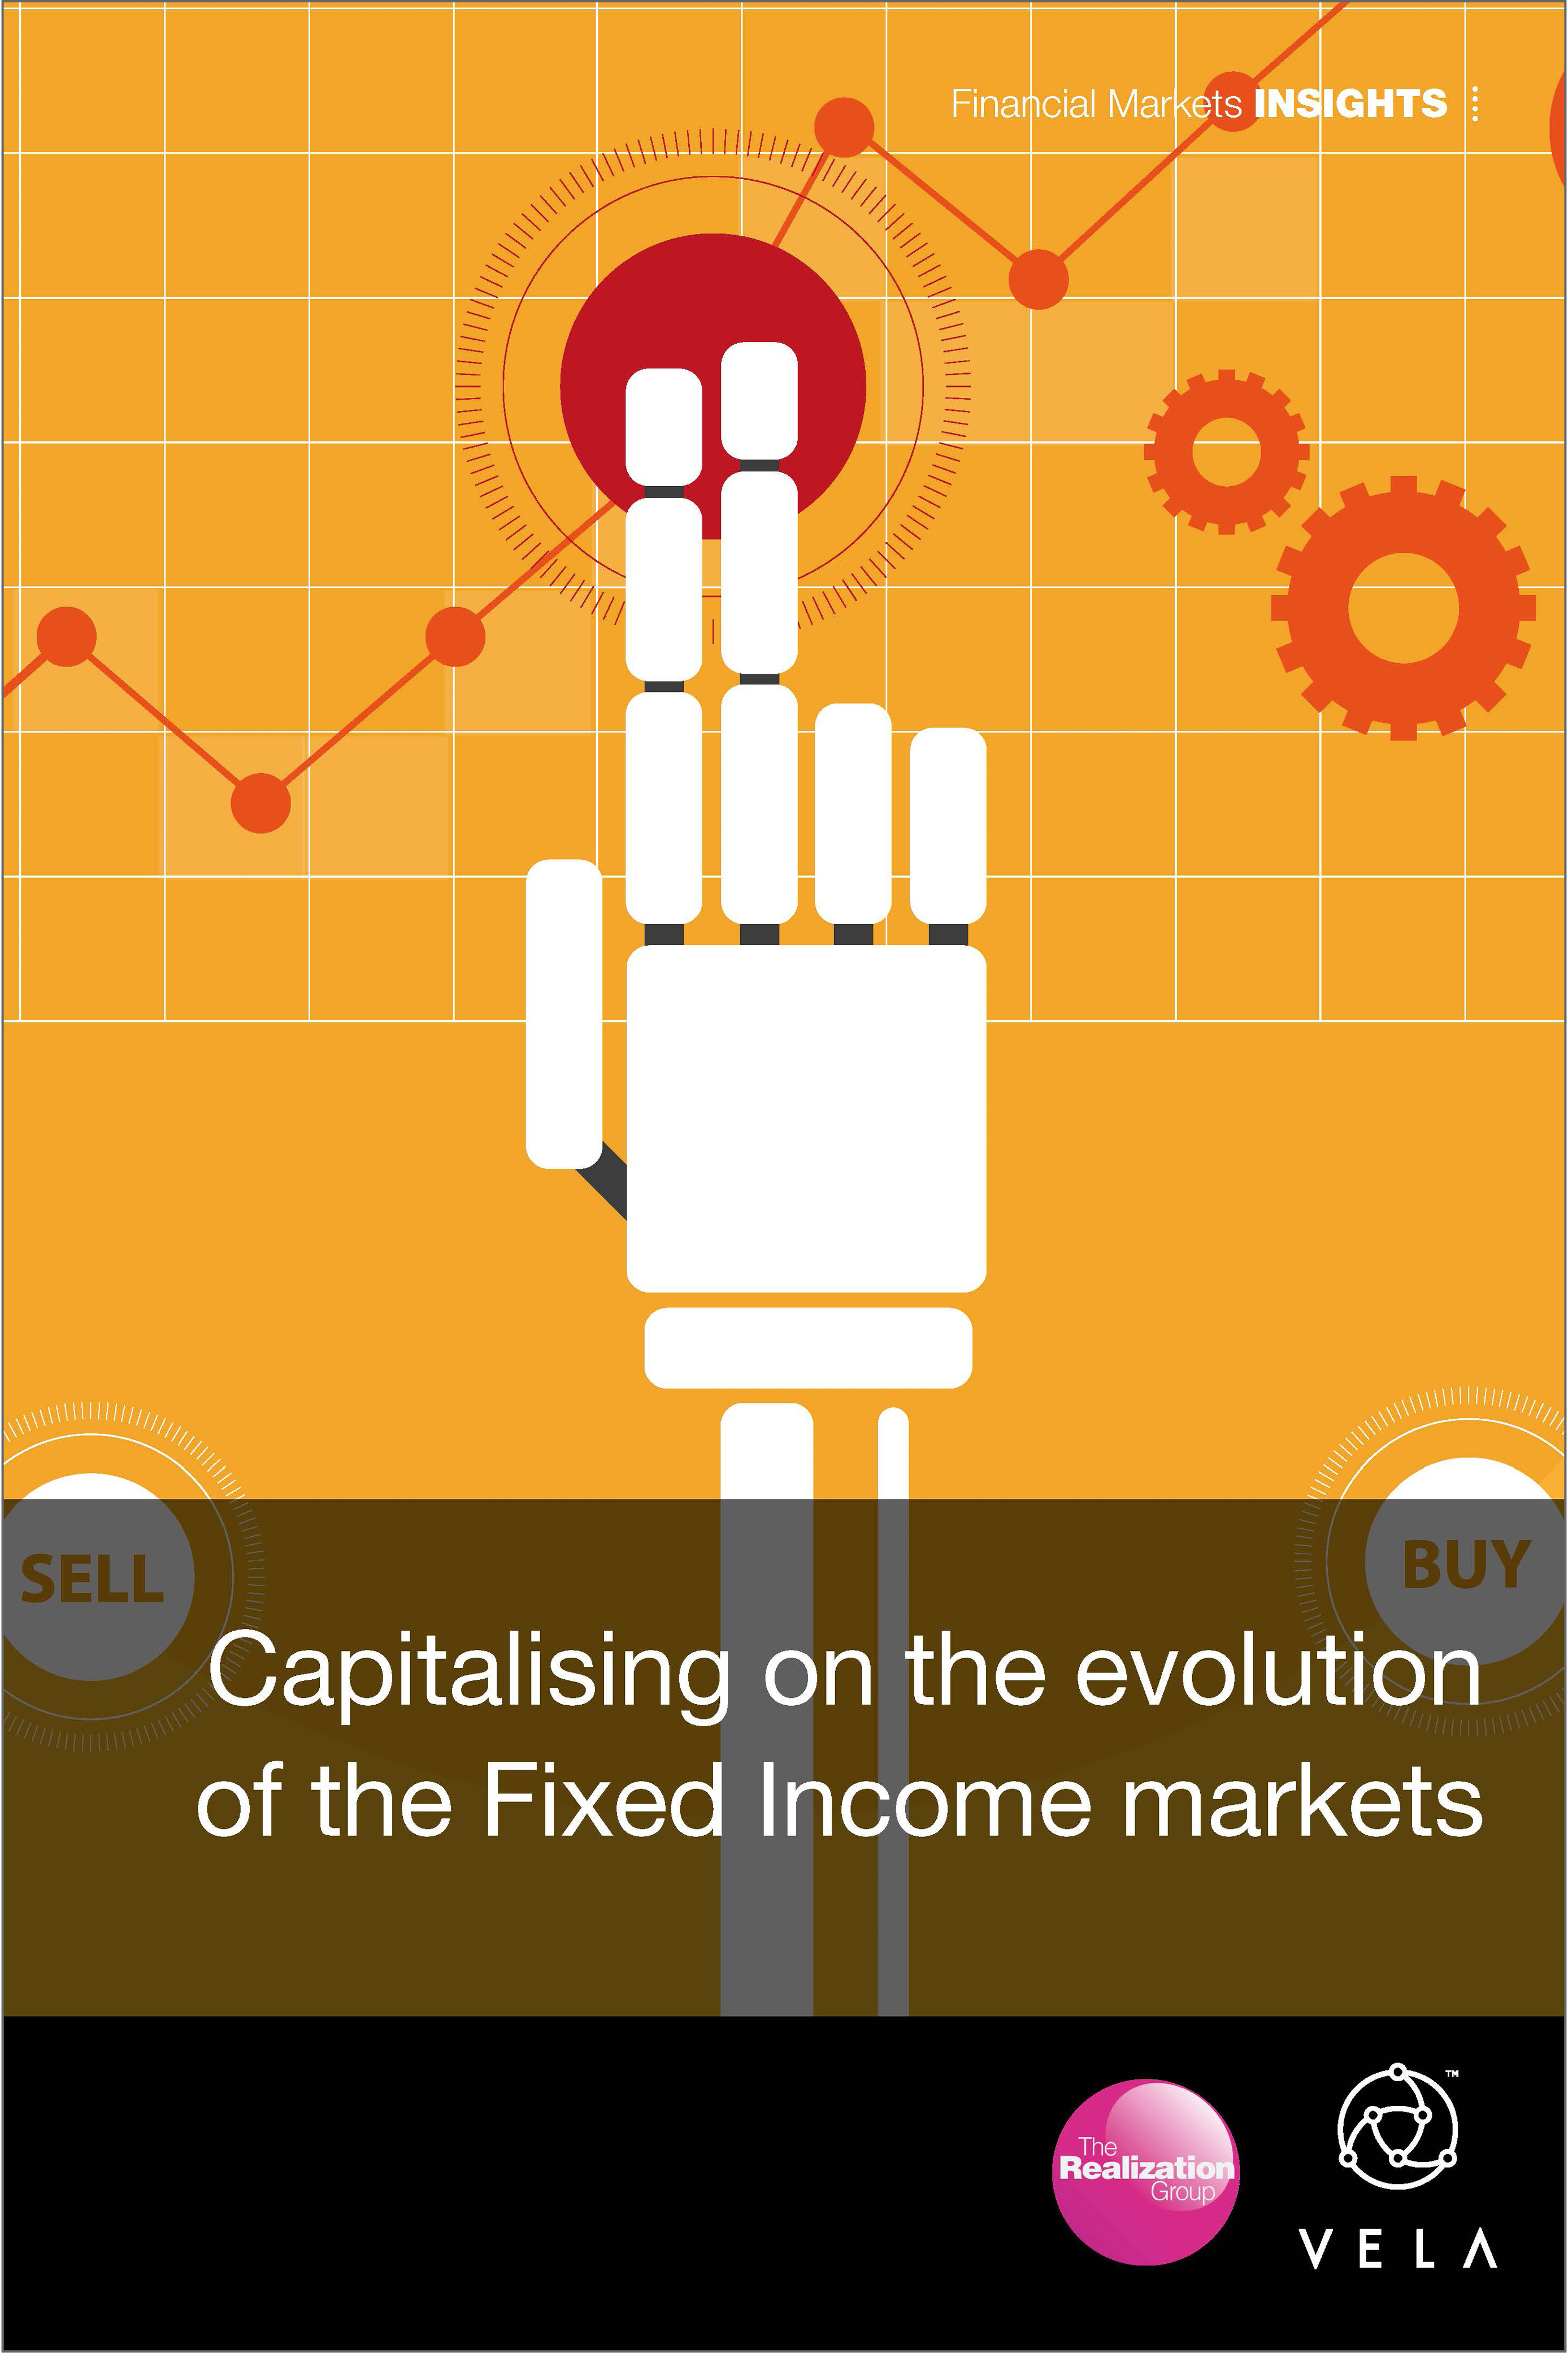 Capitalising on the evolution of the Fixed Income markets